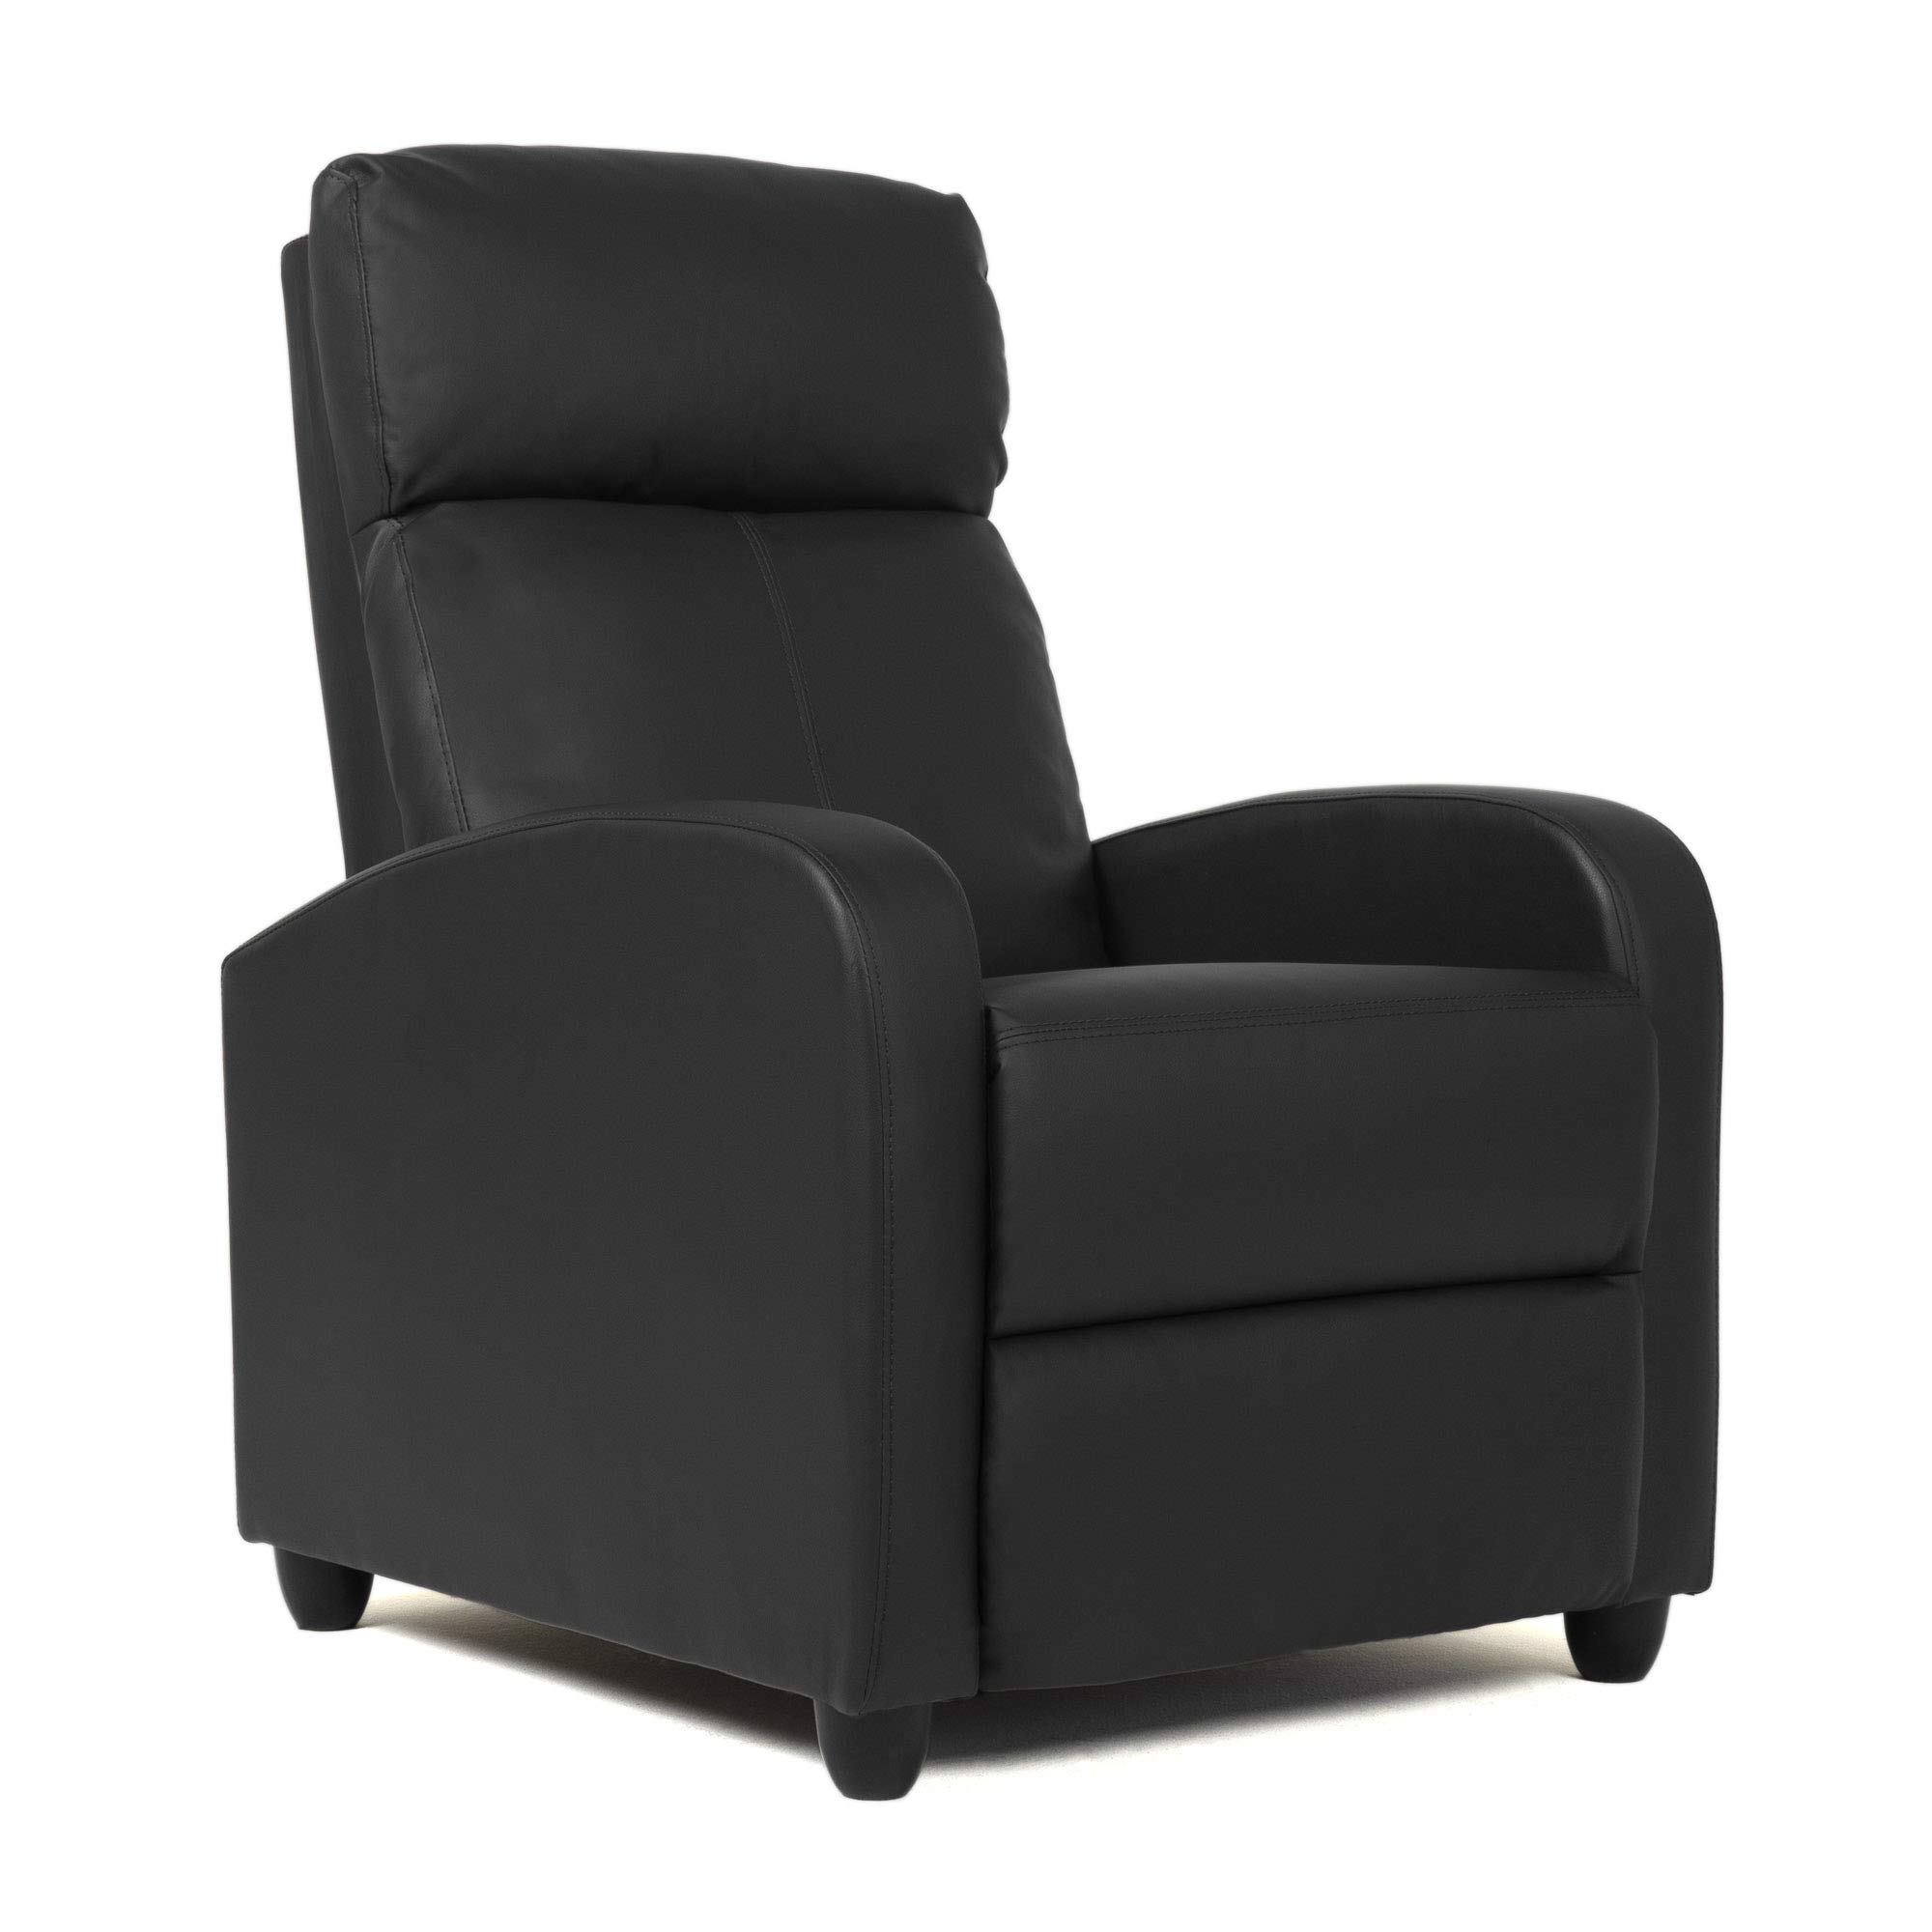 BestMassage Wingback Recliner Chair Leather